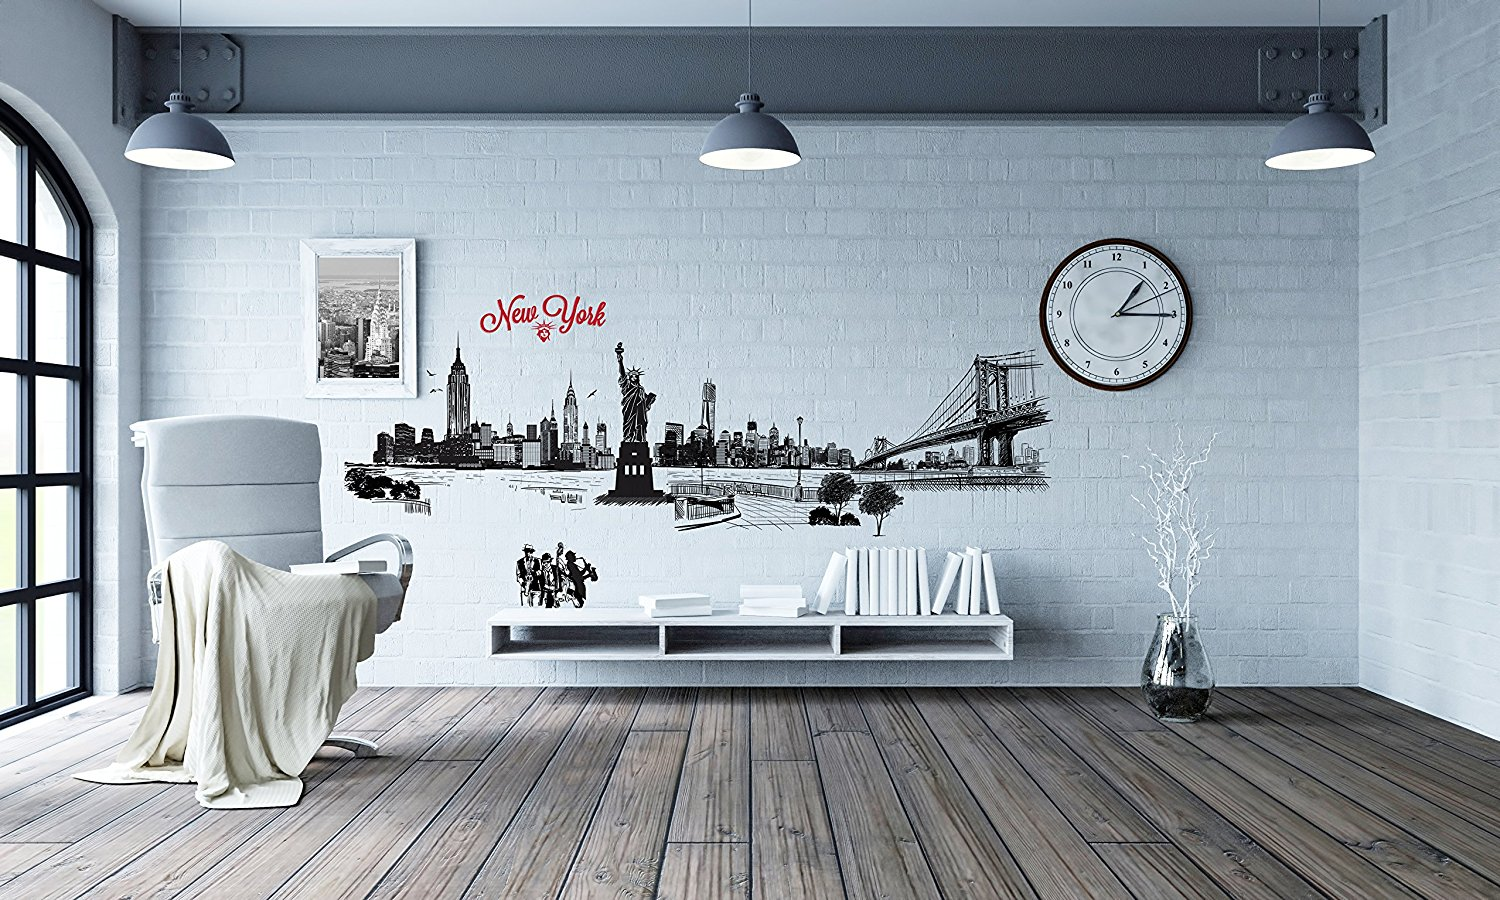 Tema New York per decorare casa